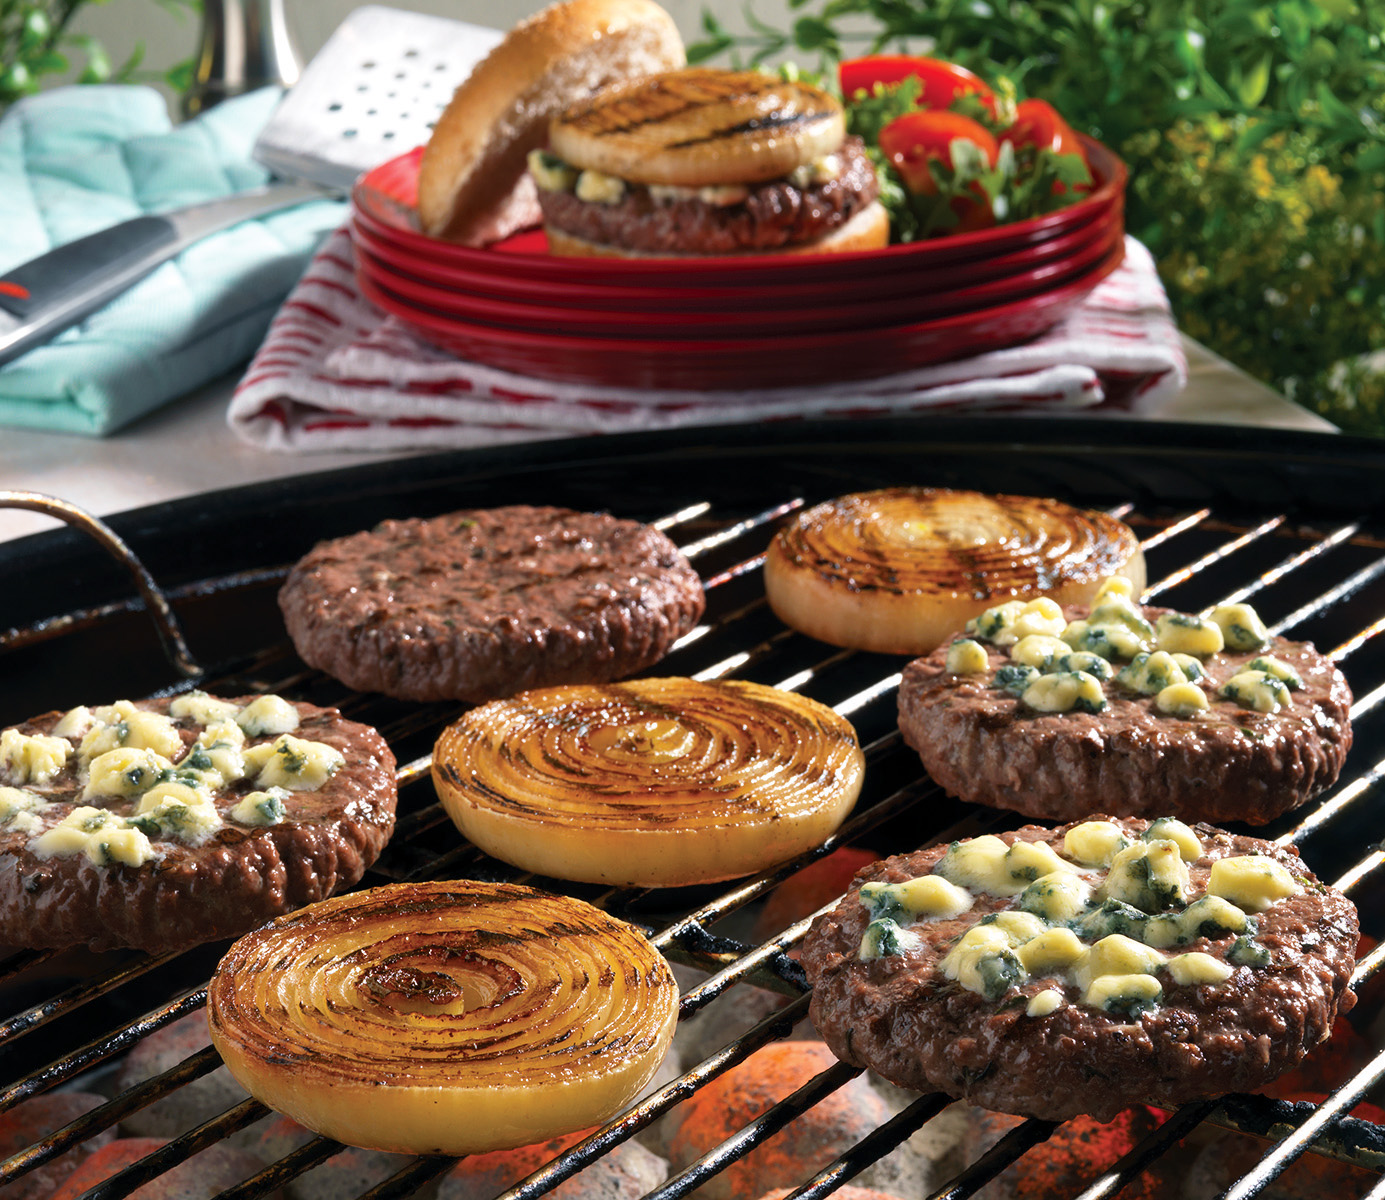 This recipe for Grilled Onion Cheeseburgers gives you all of the comforting feelings of a classic cheeseburger with the added twist of flavorful grilled onions, garlic, and your favorite crumbly cheese.